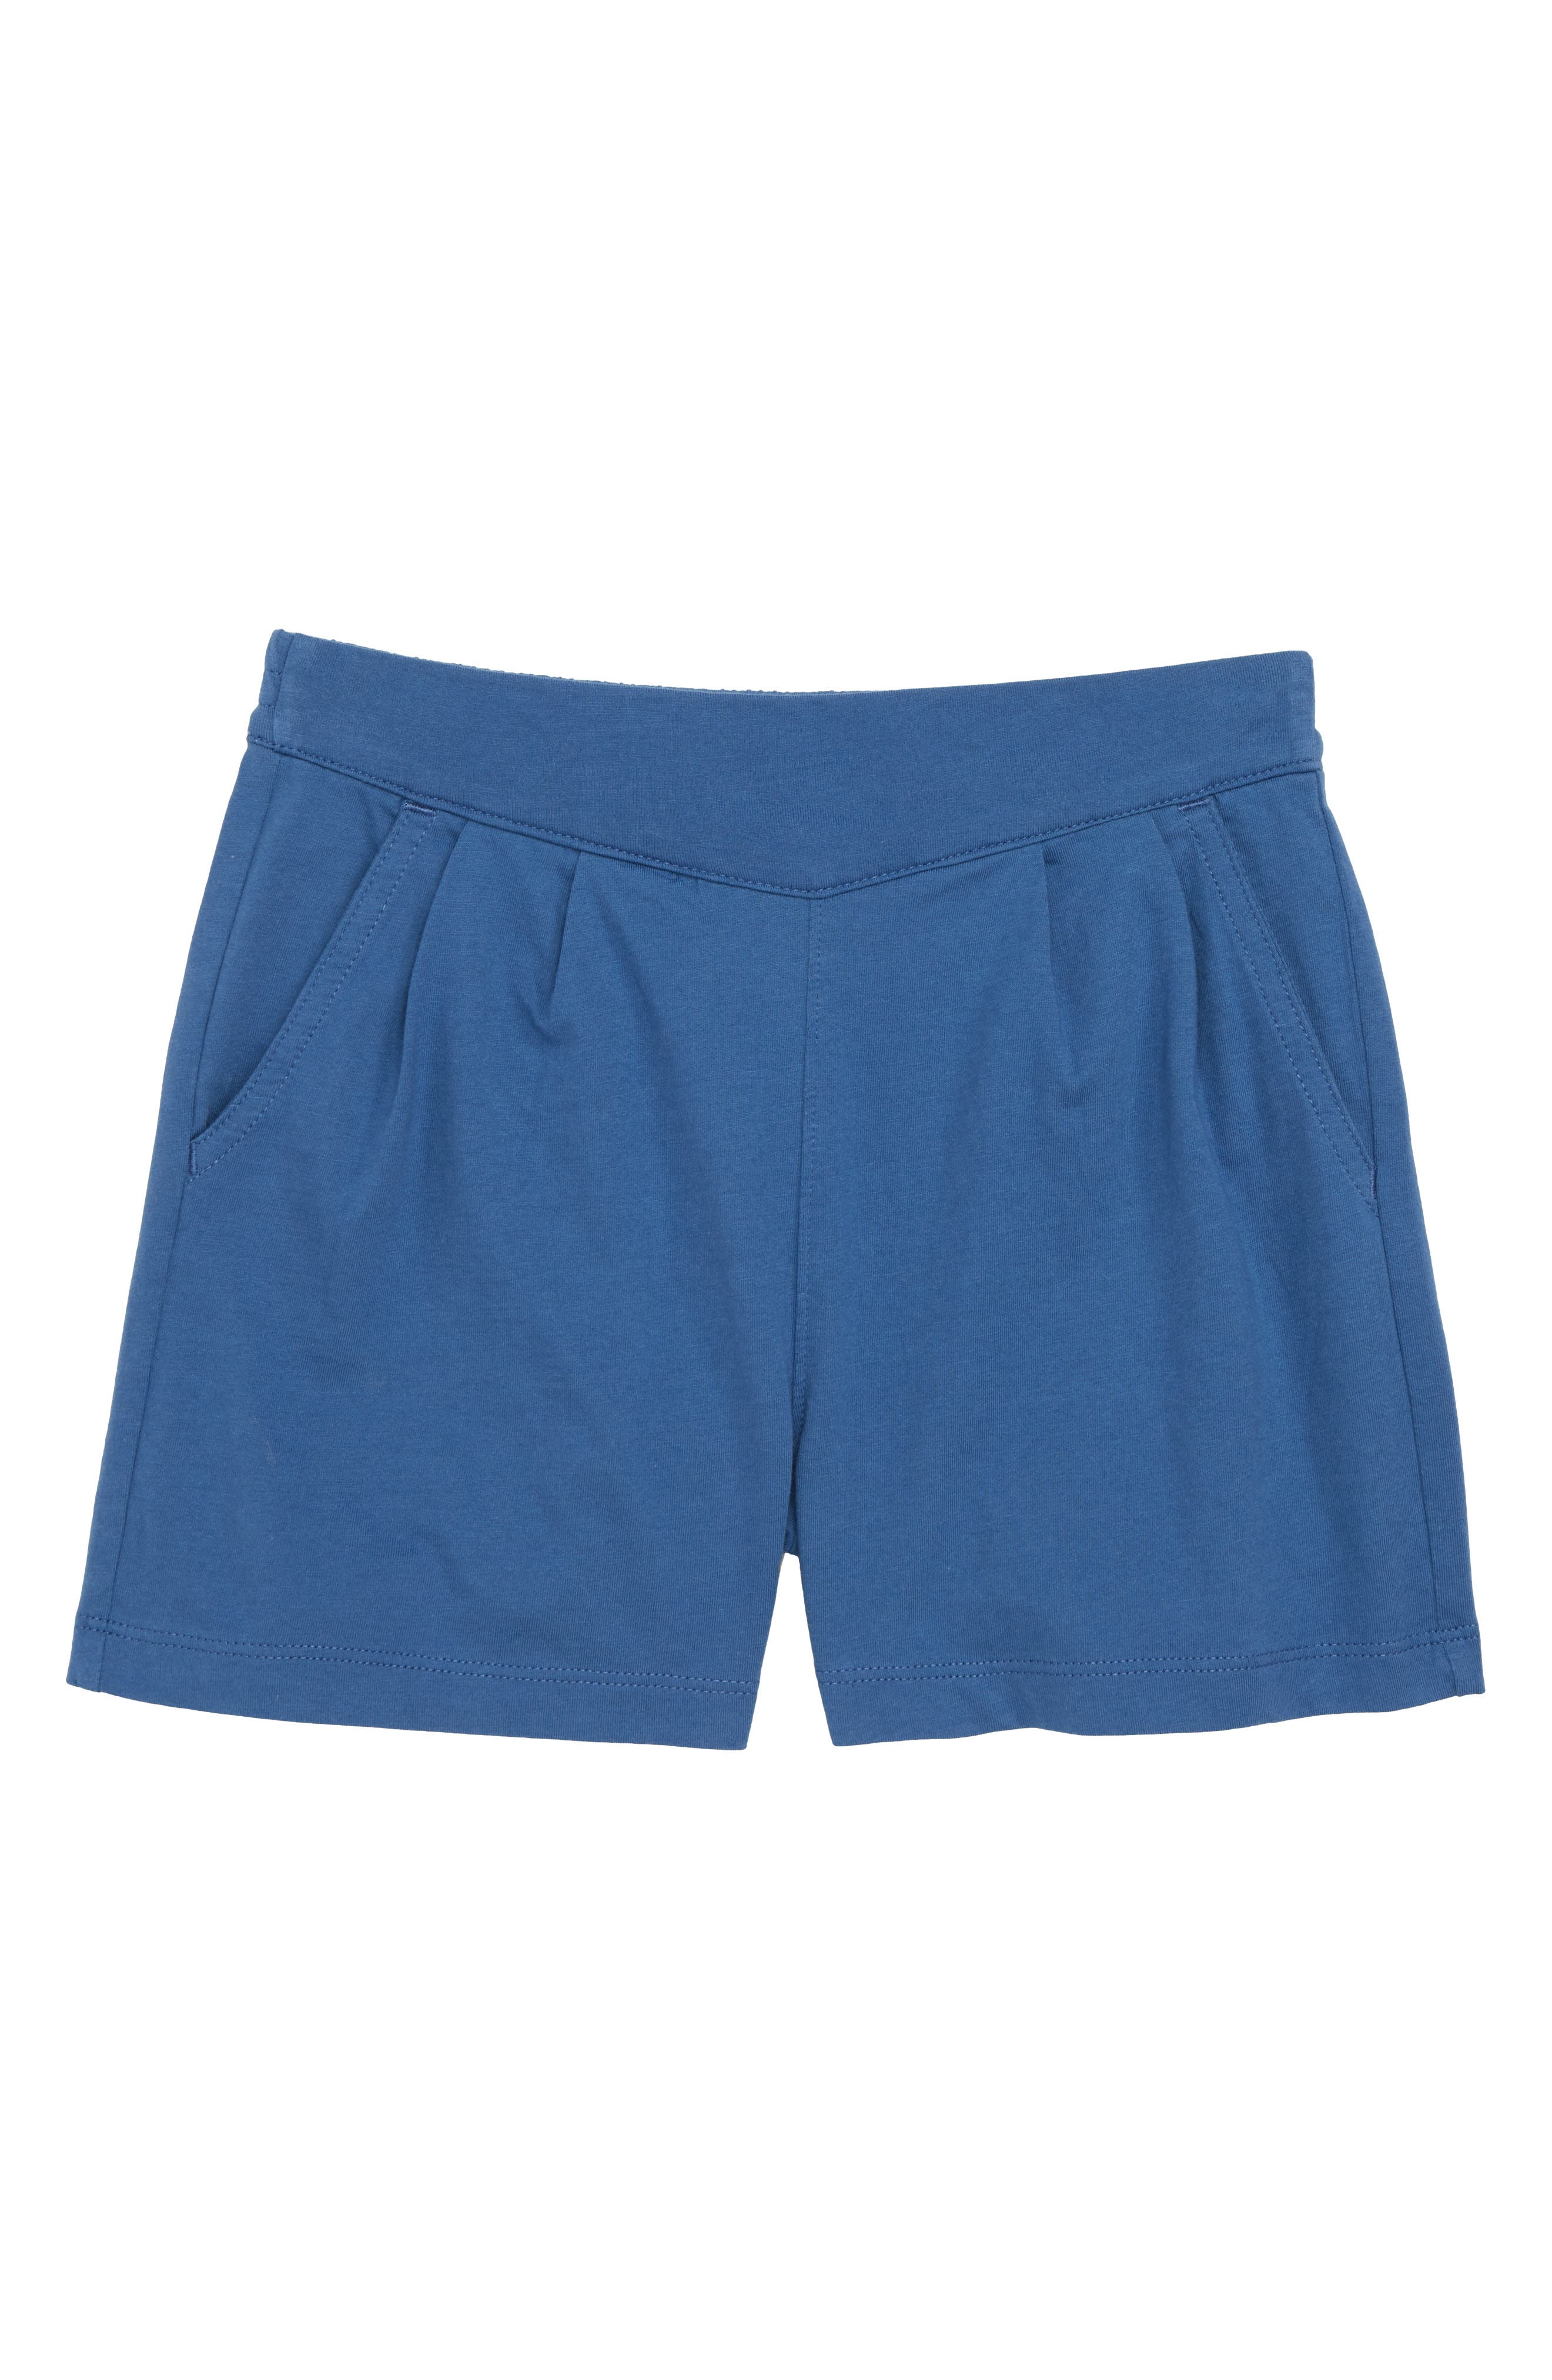 Boat Dock Shorts,                         Main,                         color, 415